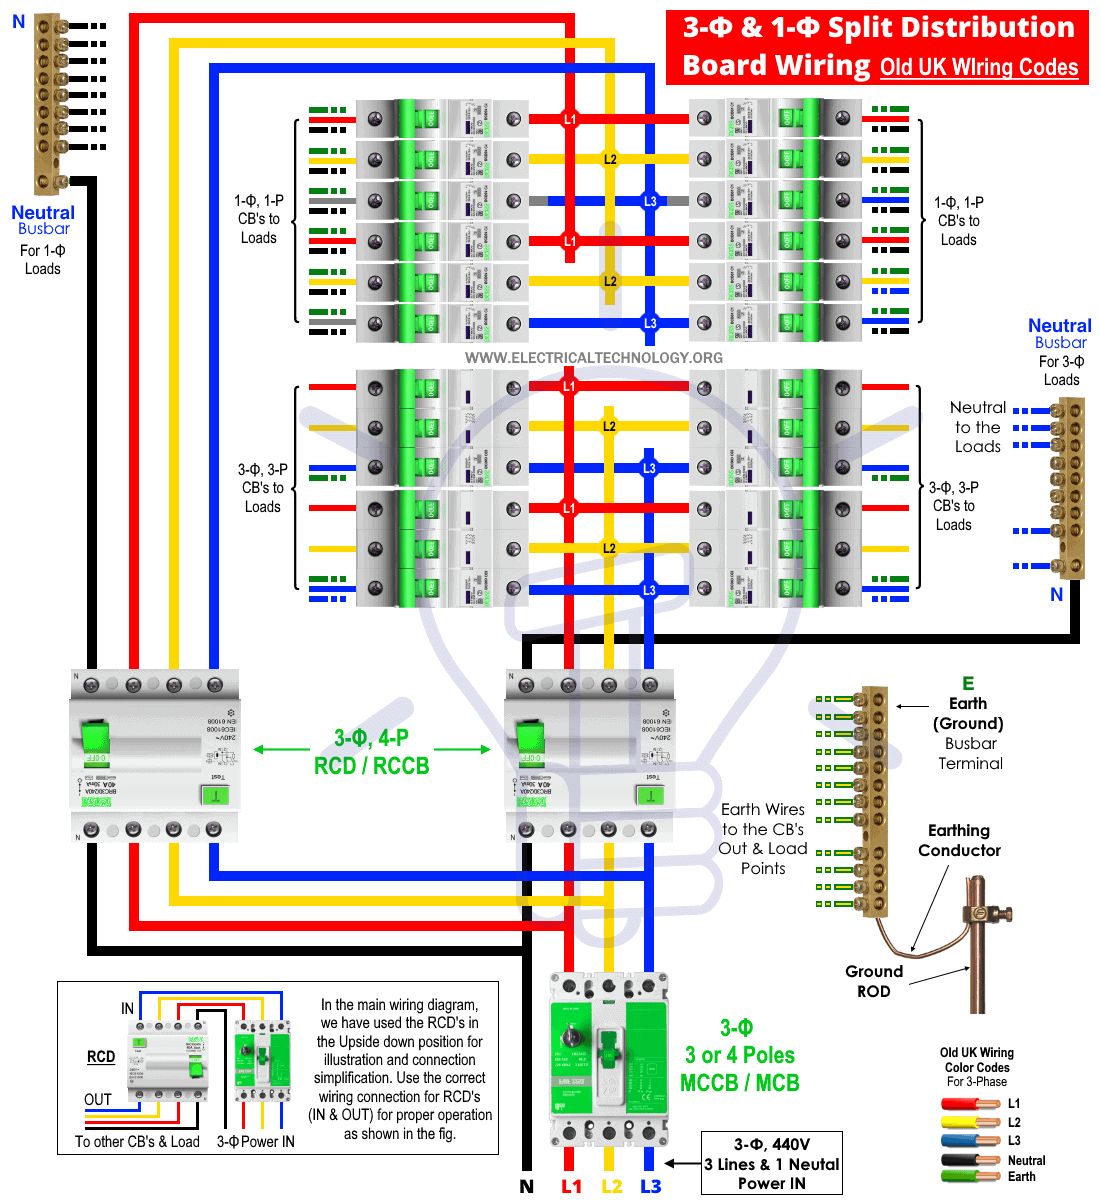 3-Phase & 1-Phase Split Load Distribution Board Wiring - Old UK Wiring Color Codes